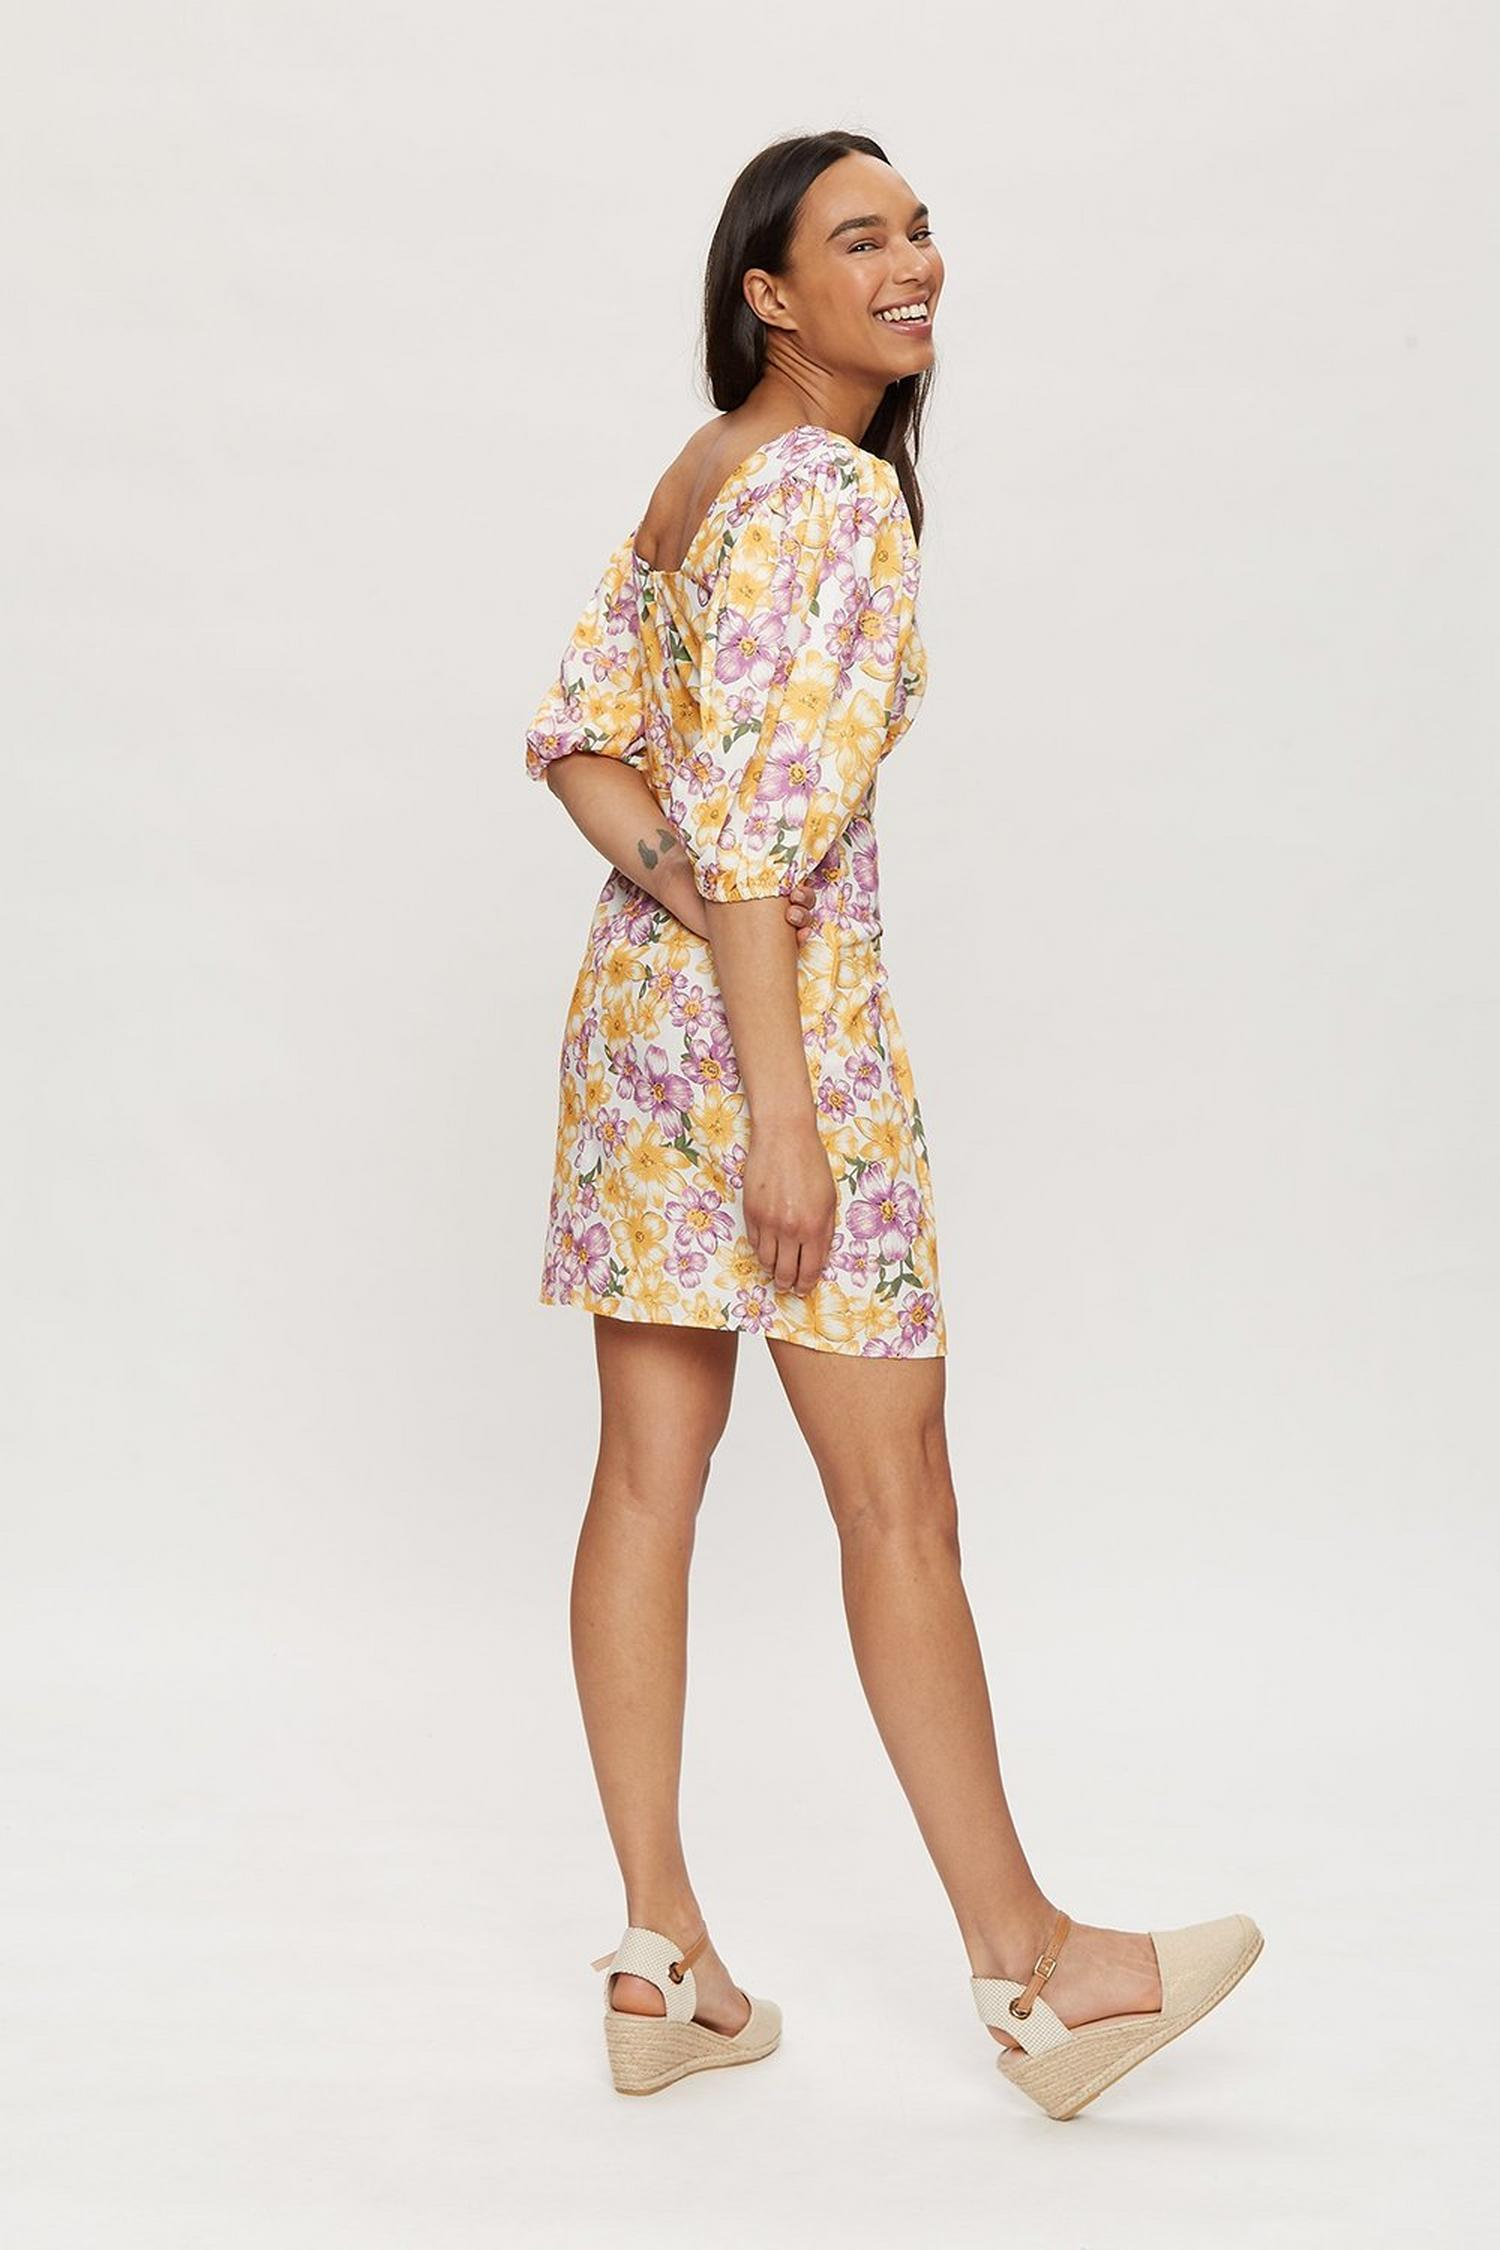 144 Multi Floral Puff Sleeve Mini Dress image number 3